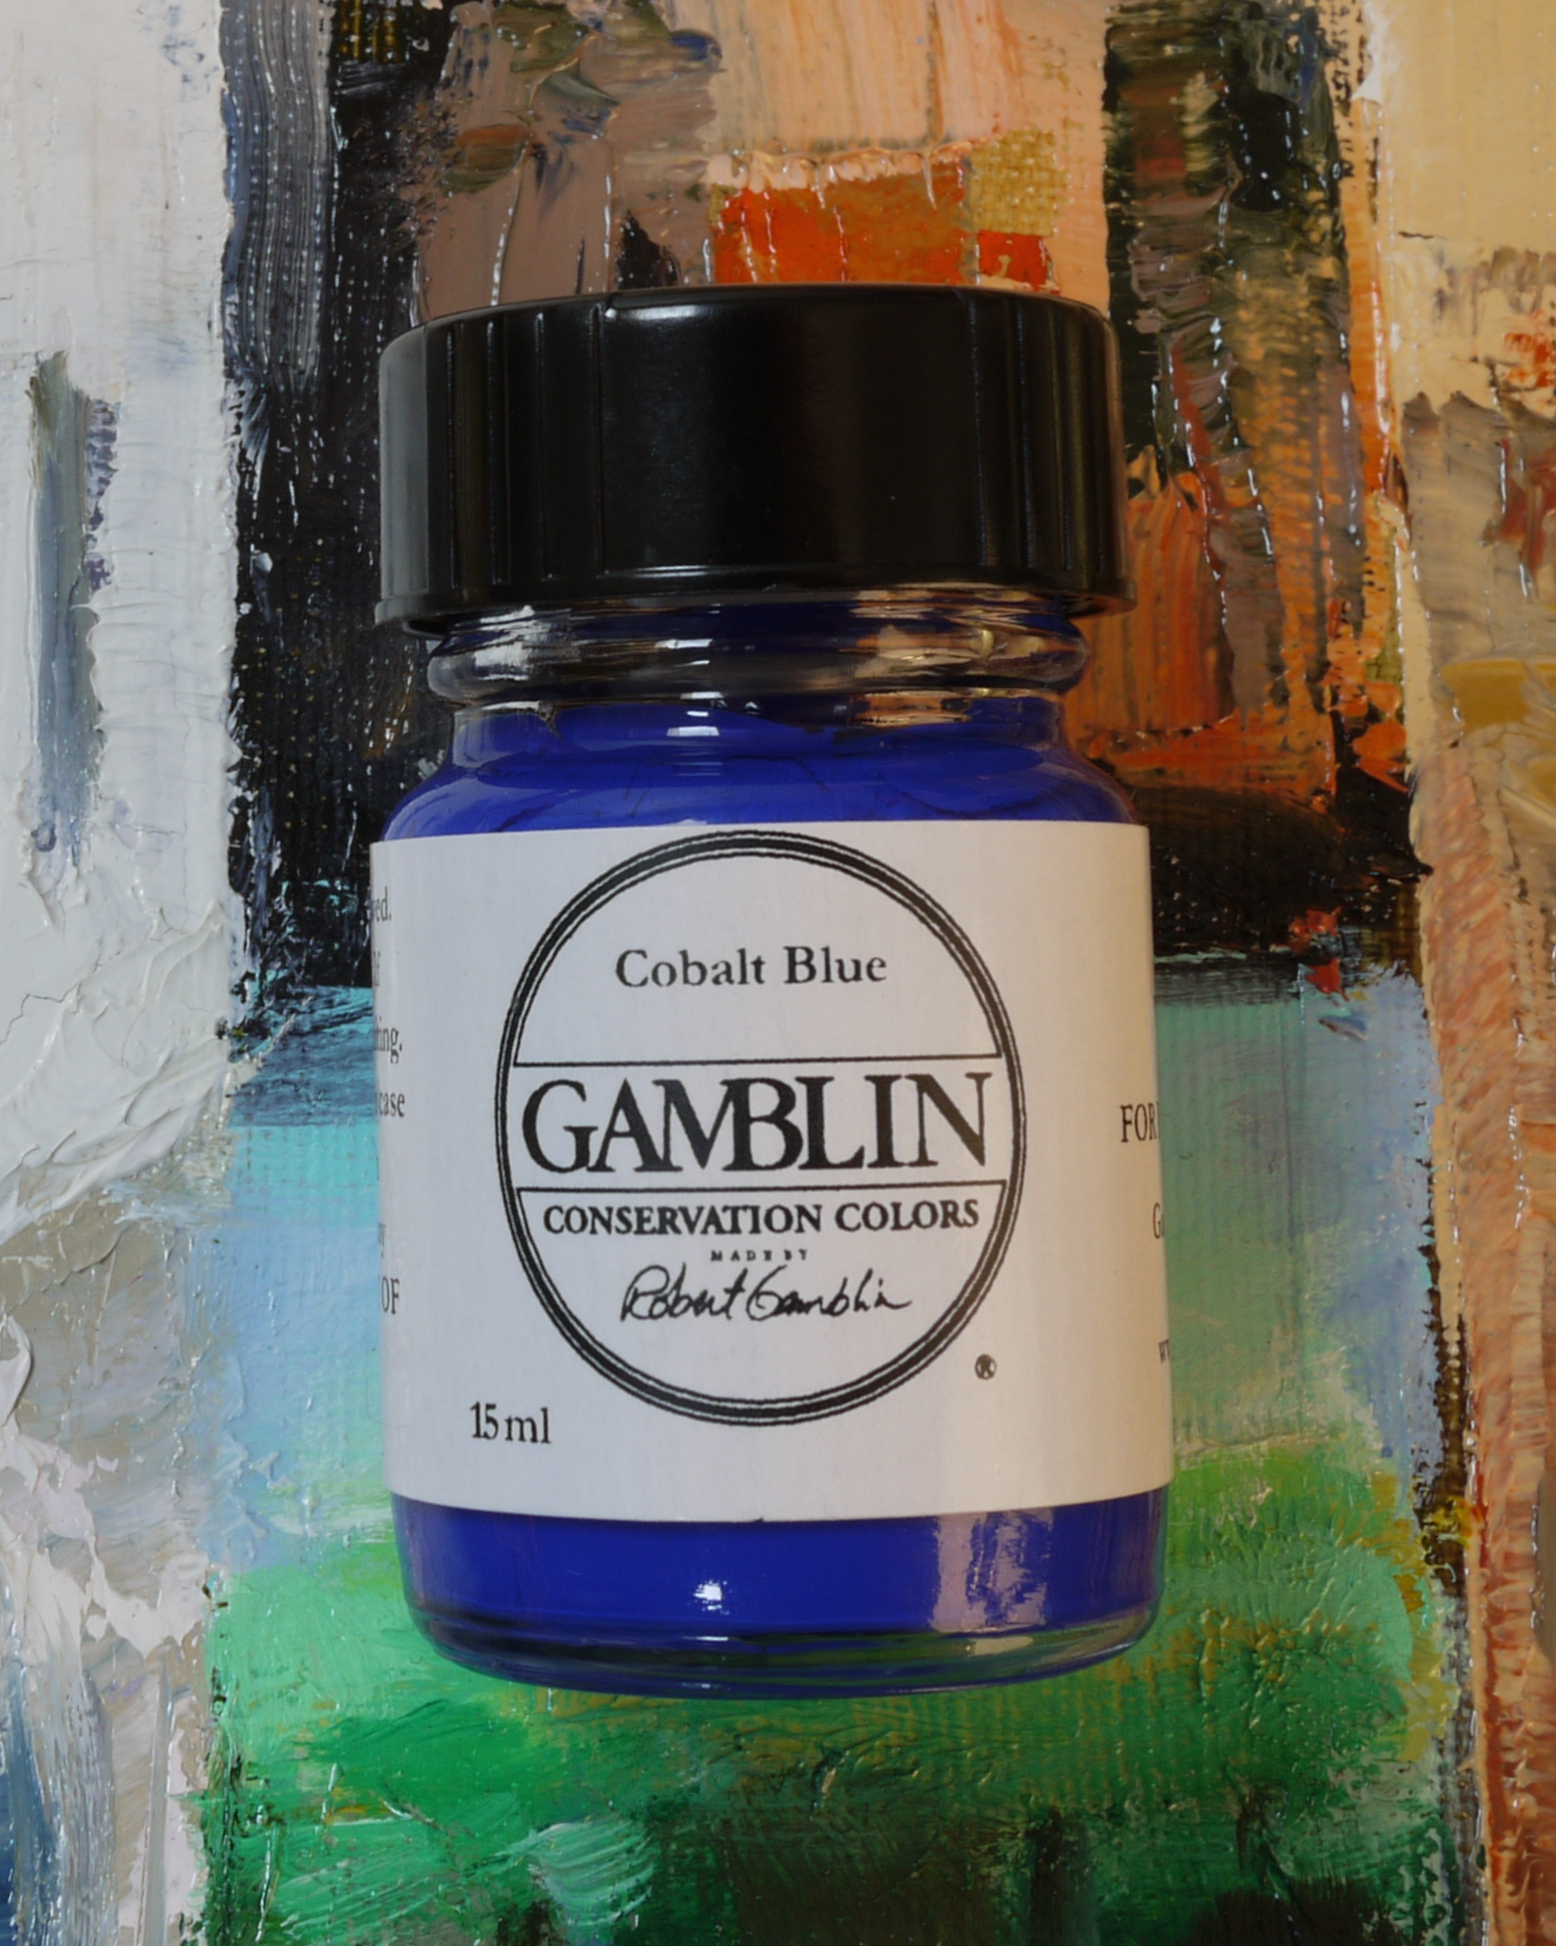 A morning with Gamblin Conservation Colors